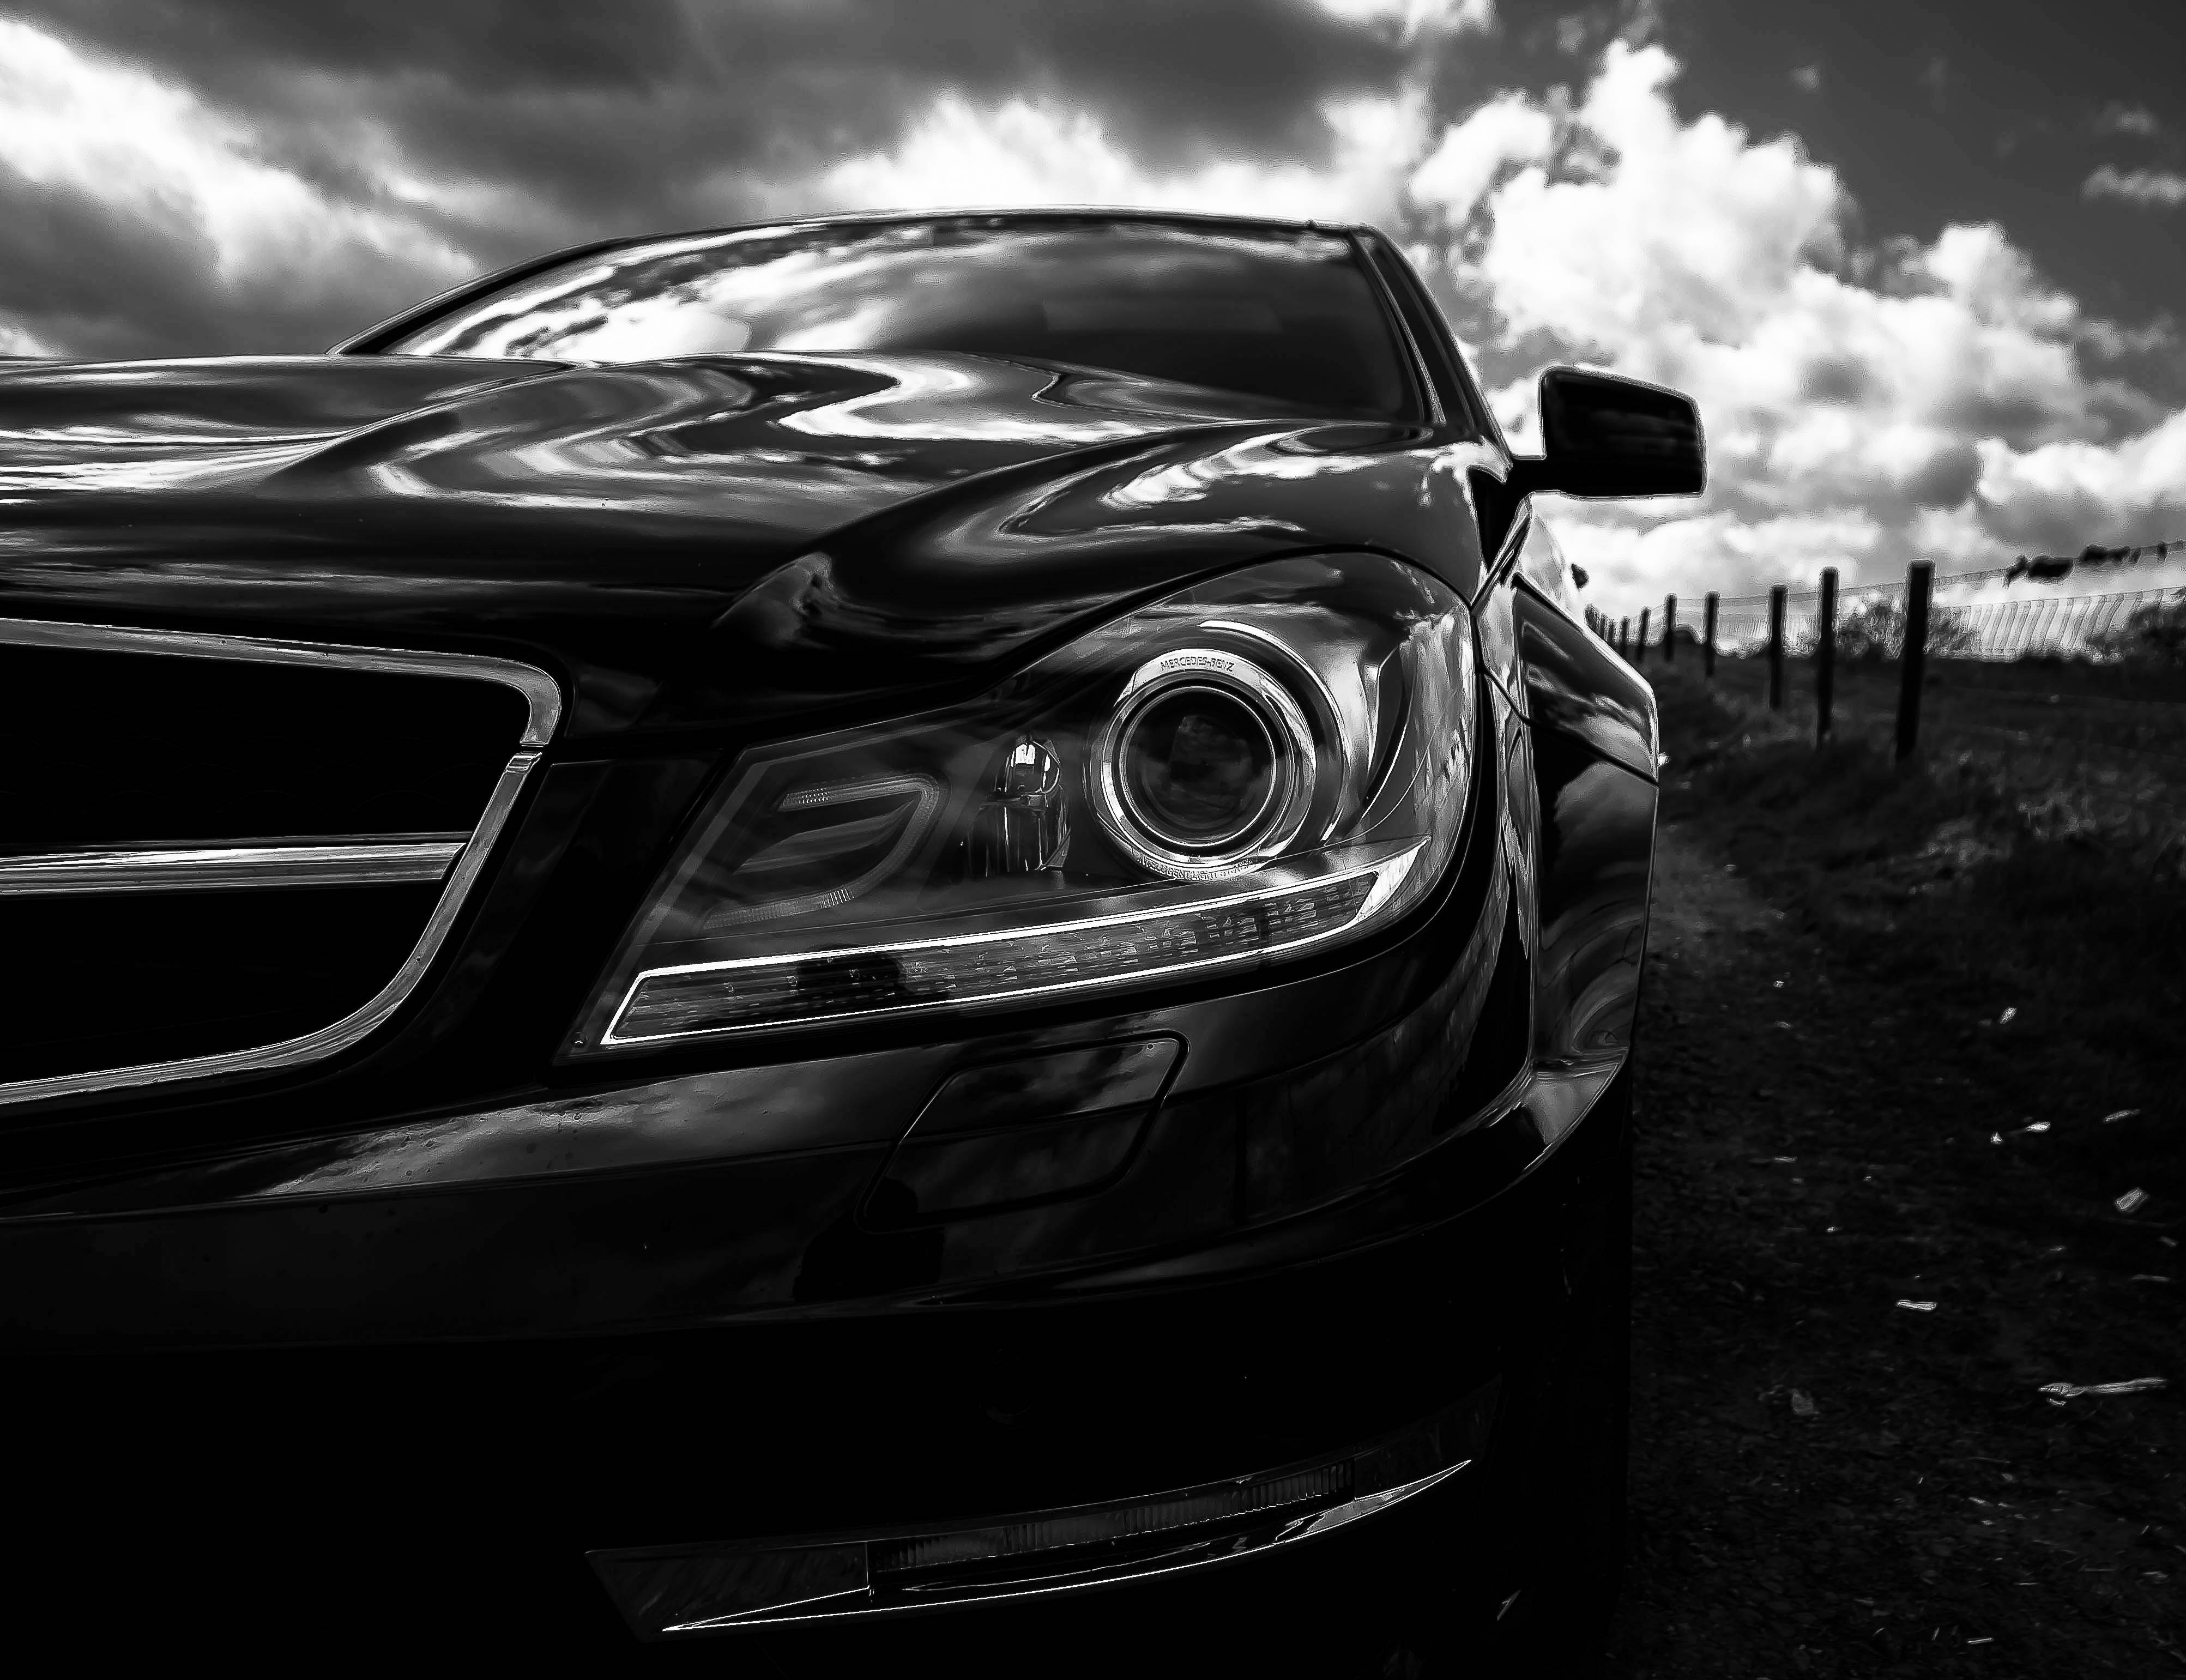 Gray Scale Photo of Car on Side of the Road, Auto, Hood, Vehicle, Transportation system, HQ Photo